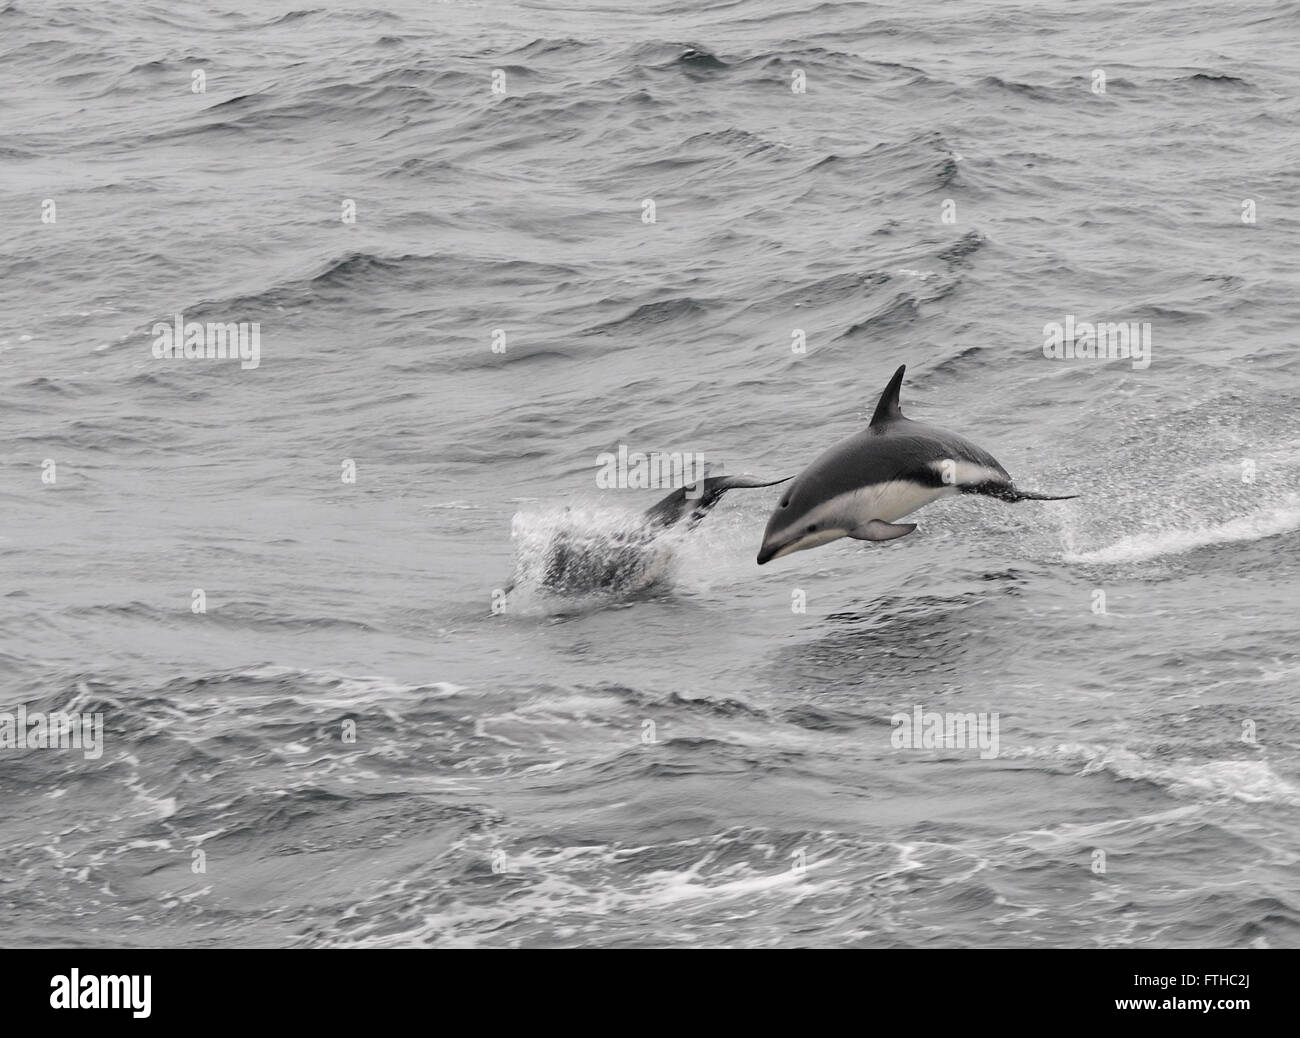 Dusky Dolphins (Lagenorhynchus obscurus) leaping from the sea. Drake Passage, South Atlantic Ocean. - Stock Image